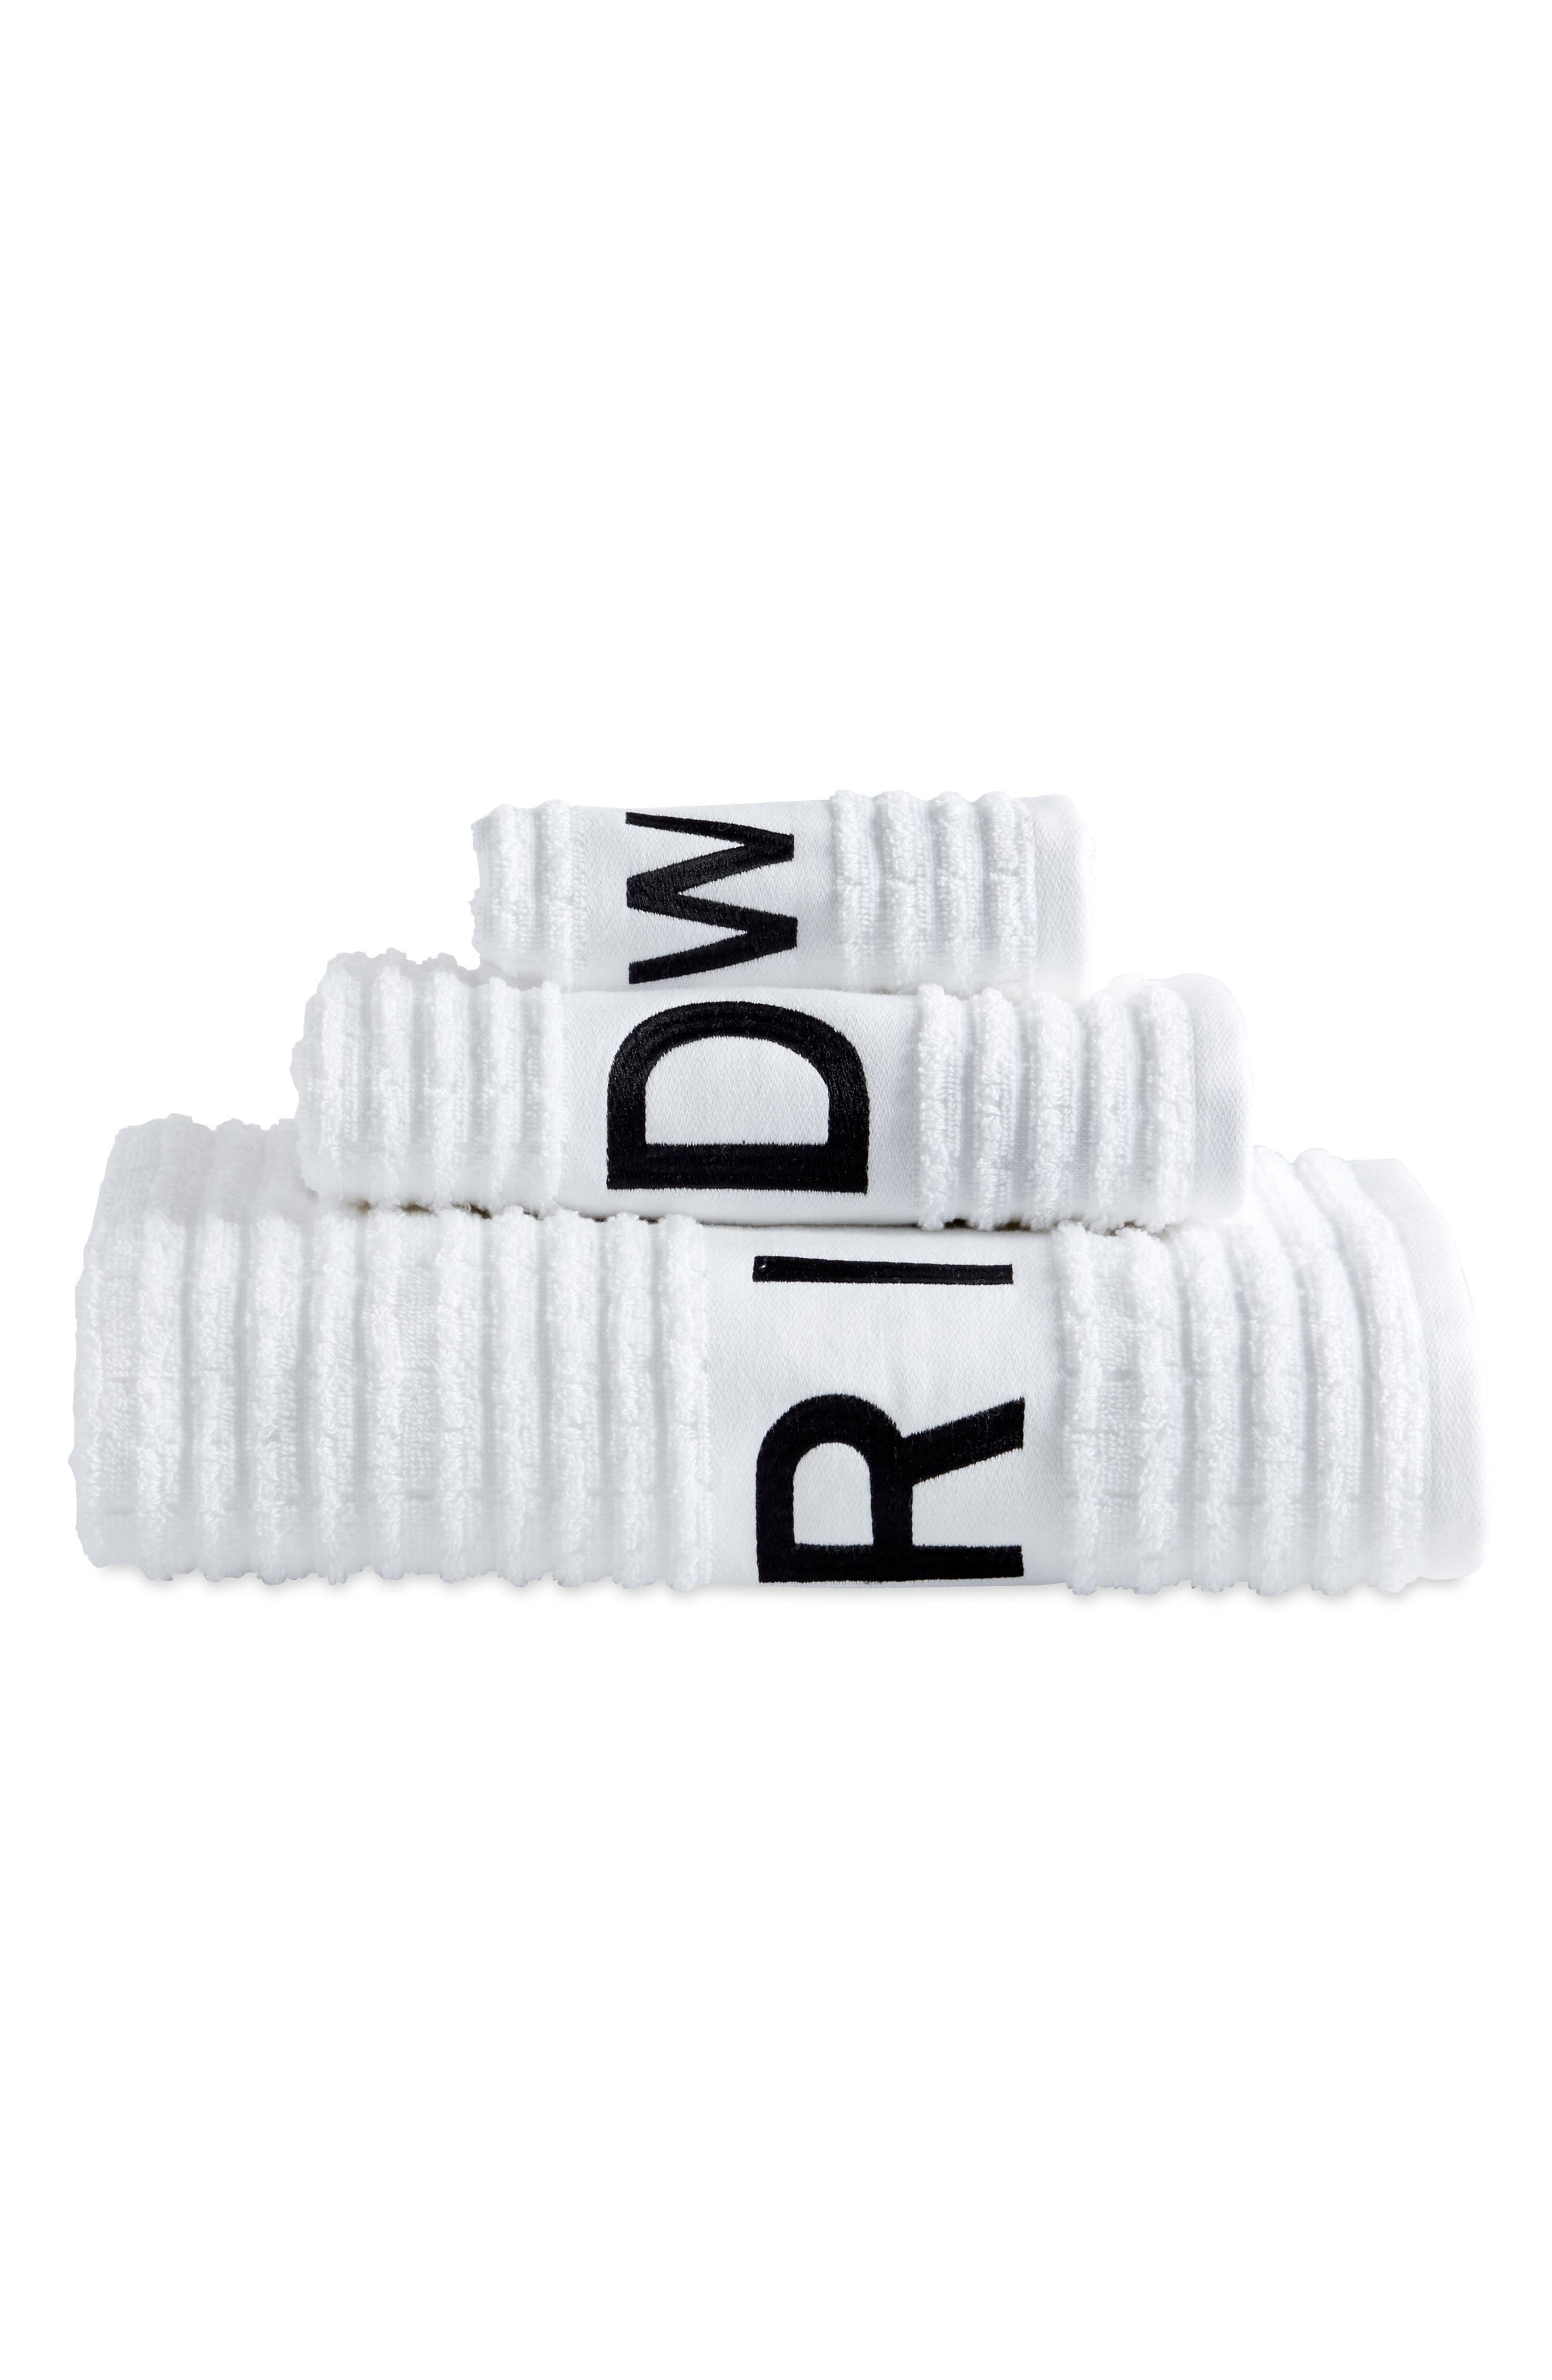 DKNY, Chatter Set of 3 Towels, Alternate thumbnail 4, color, WHITE